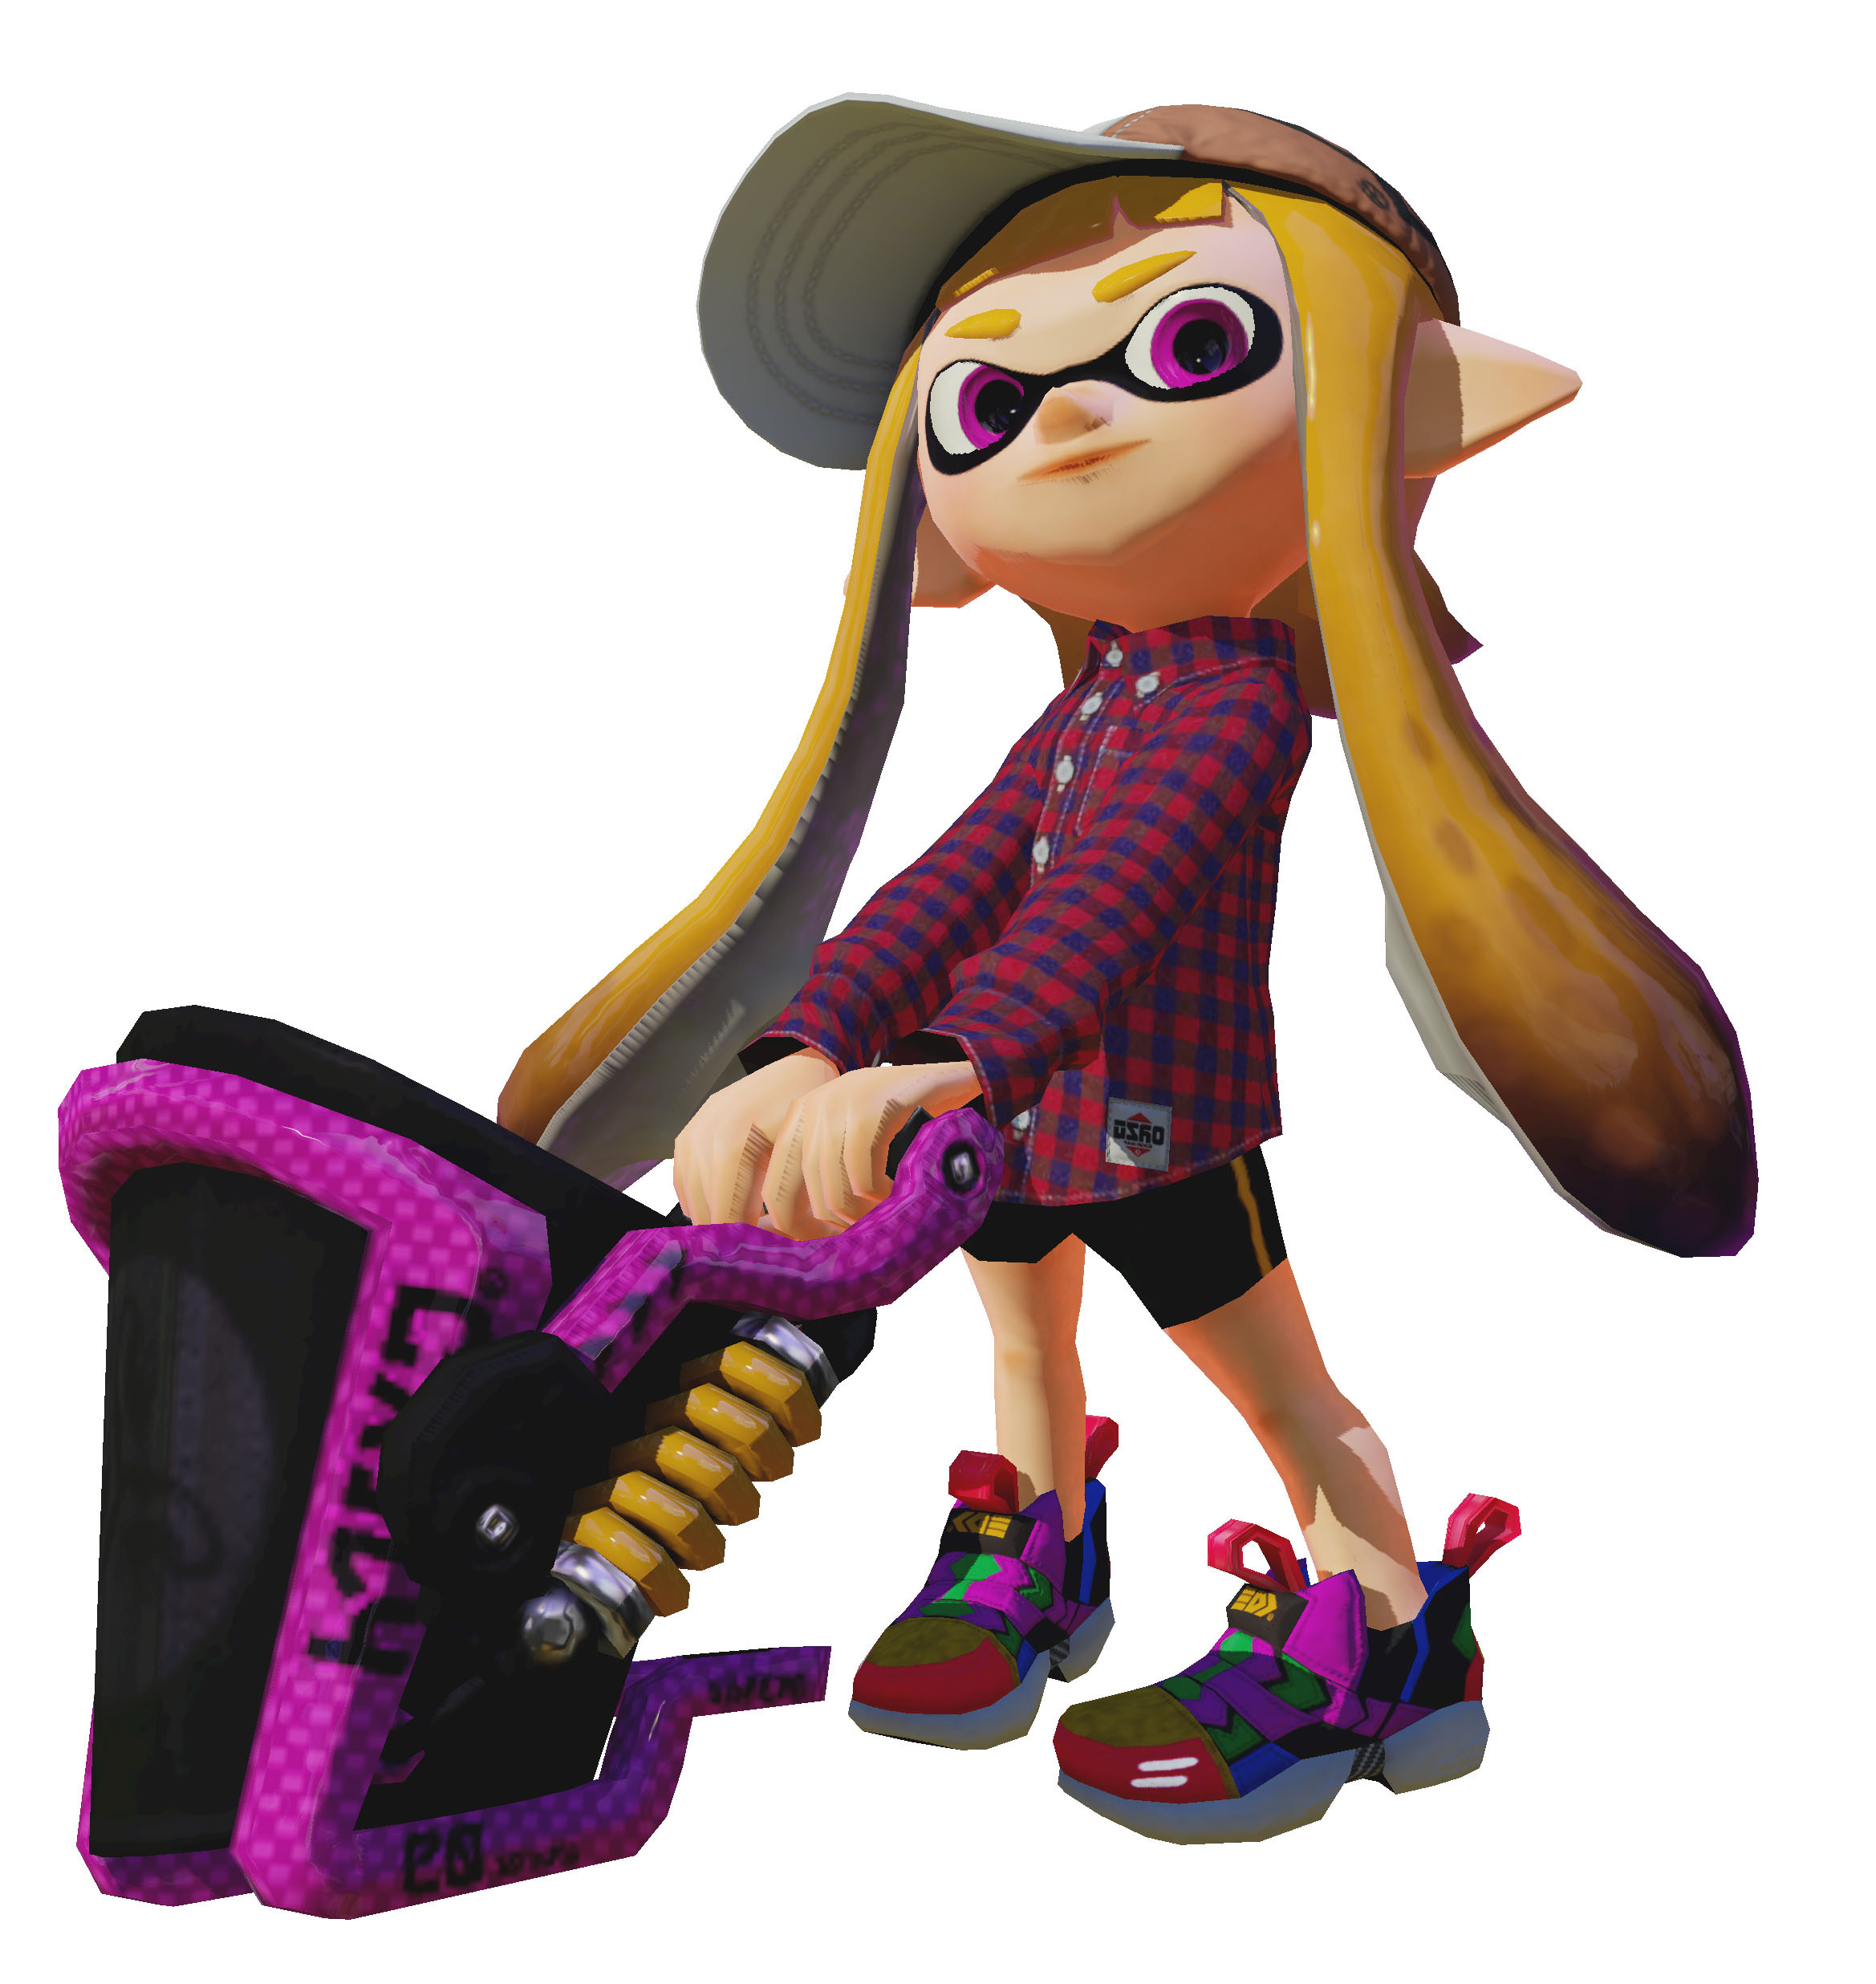 f7bd4e3c385 Nintendo News  Massive August Update Brings a Boatload of New Content to  Splatoon